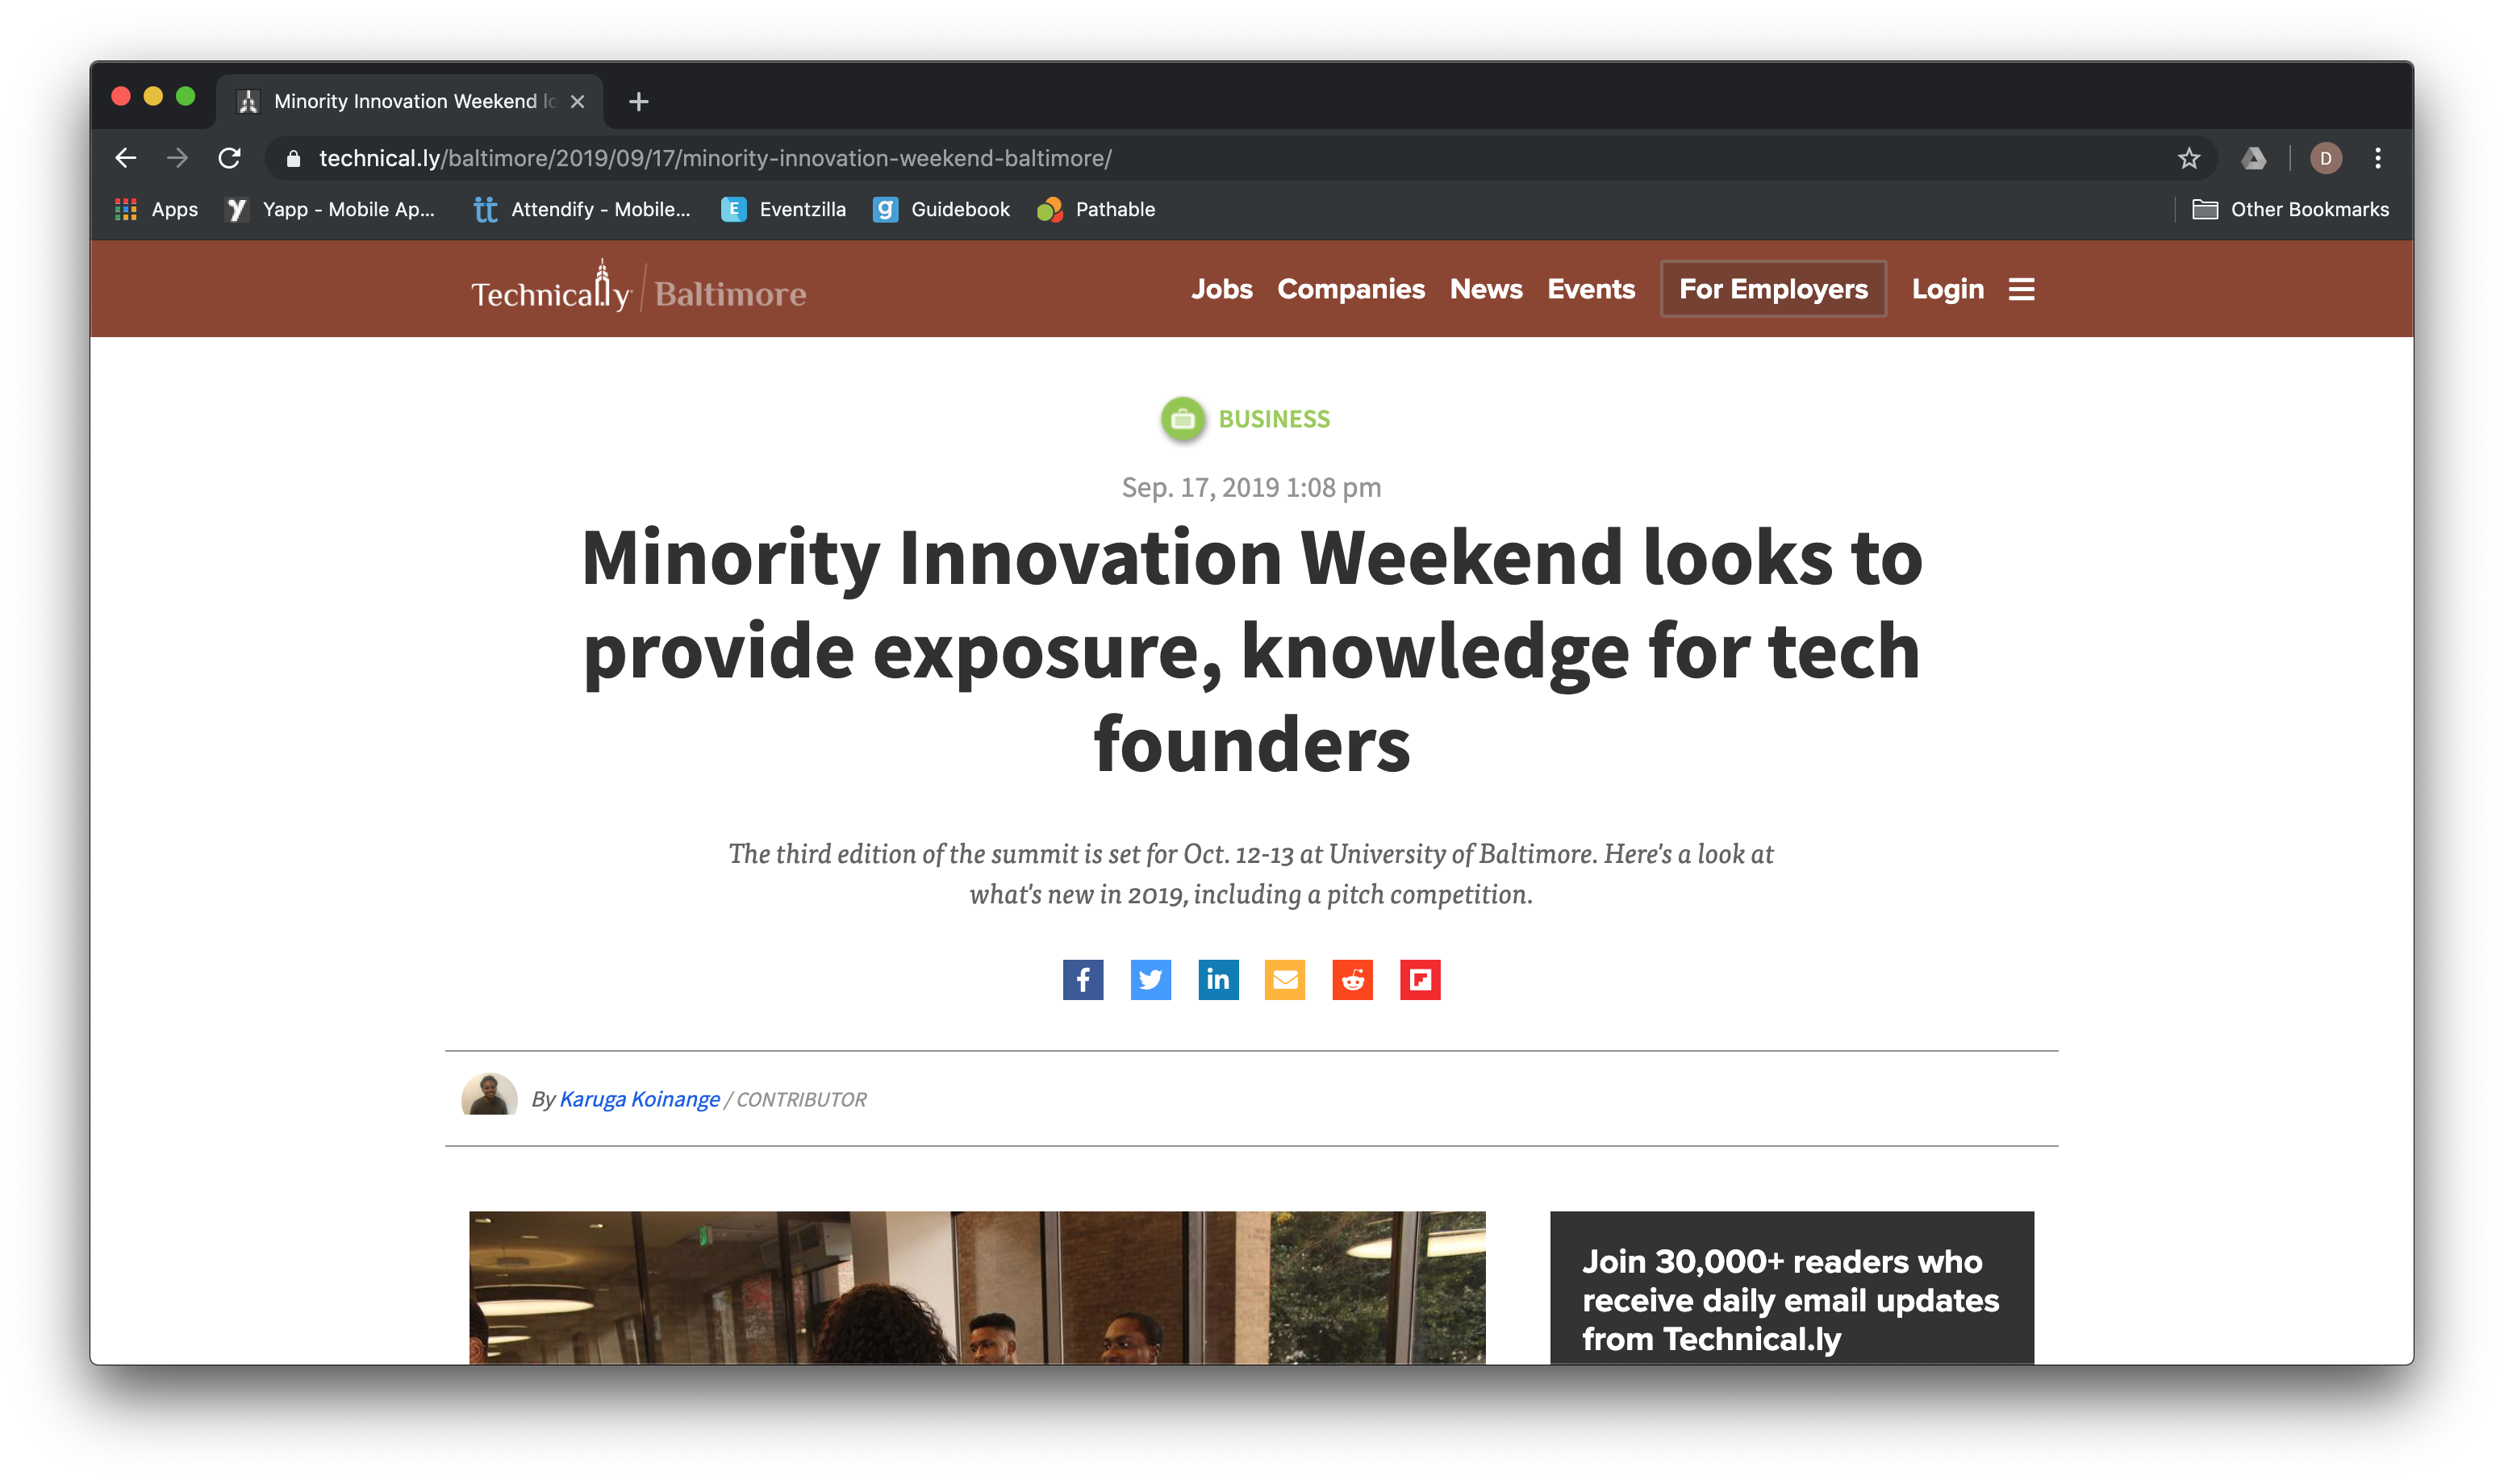 In The News: See the latest coverage of MIW 2019 from Technically Baltimore!